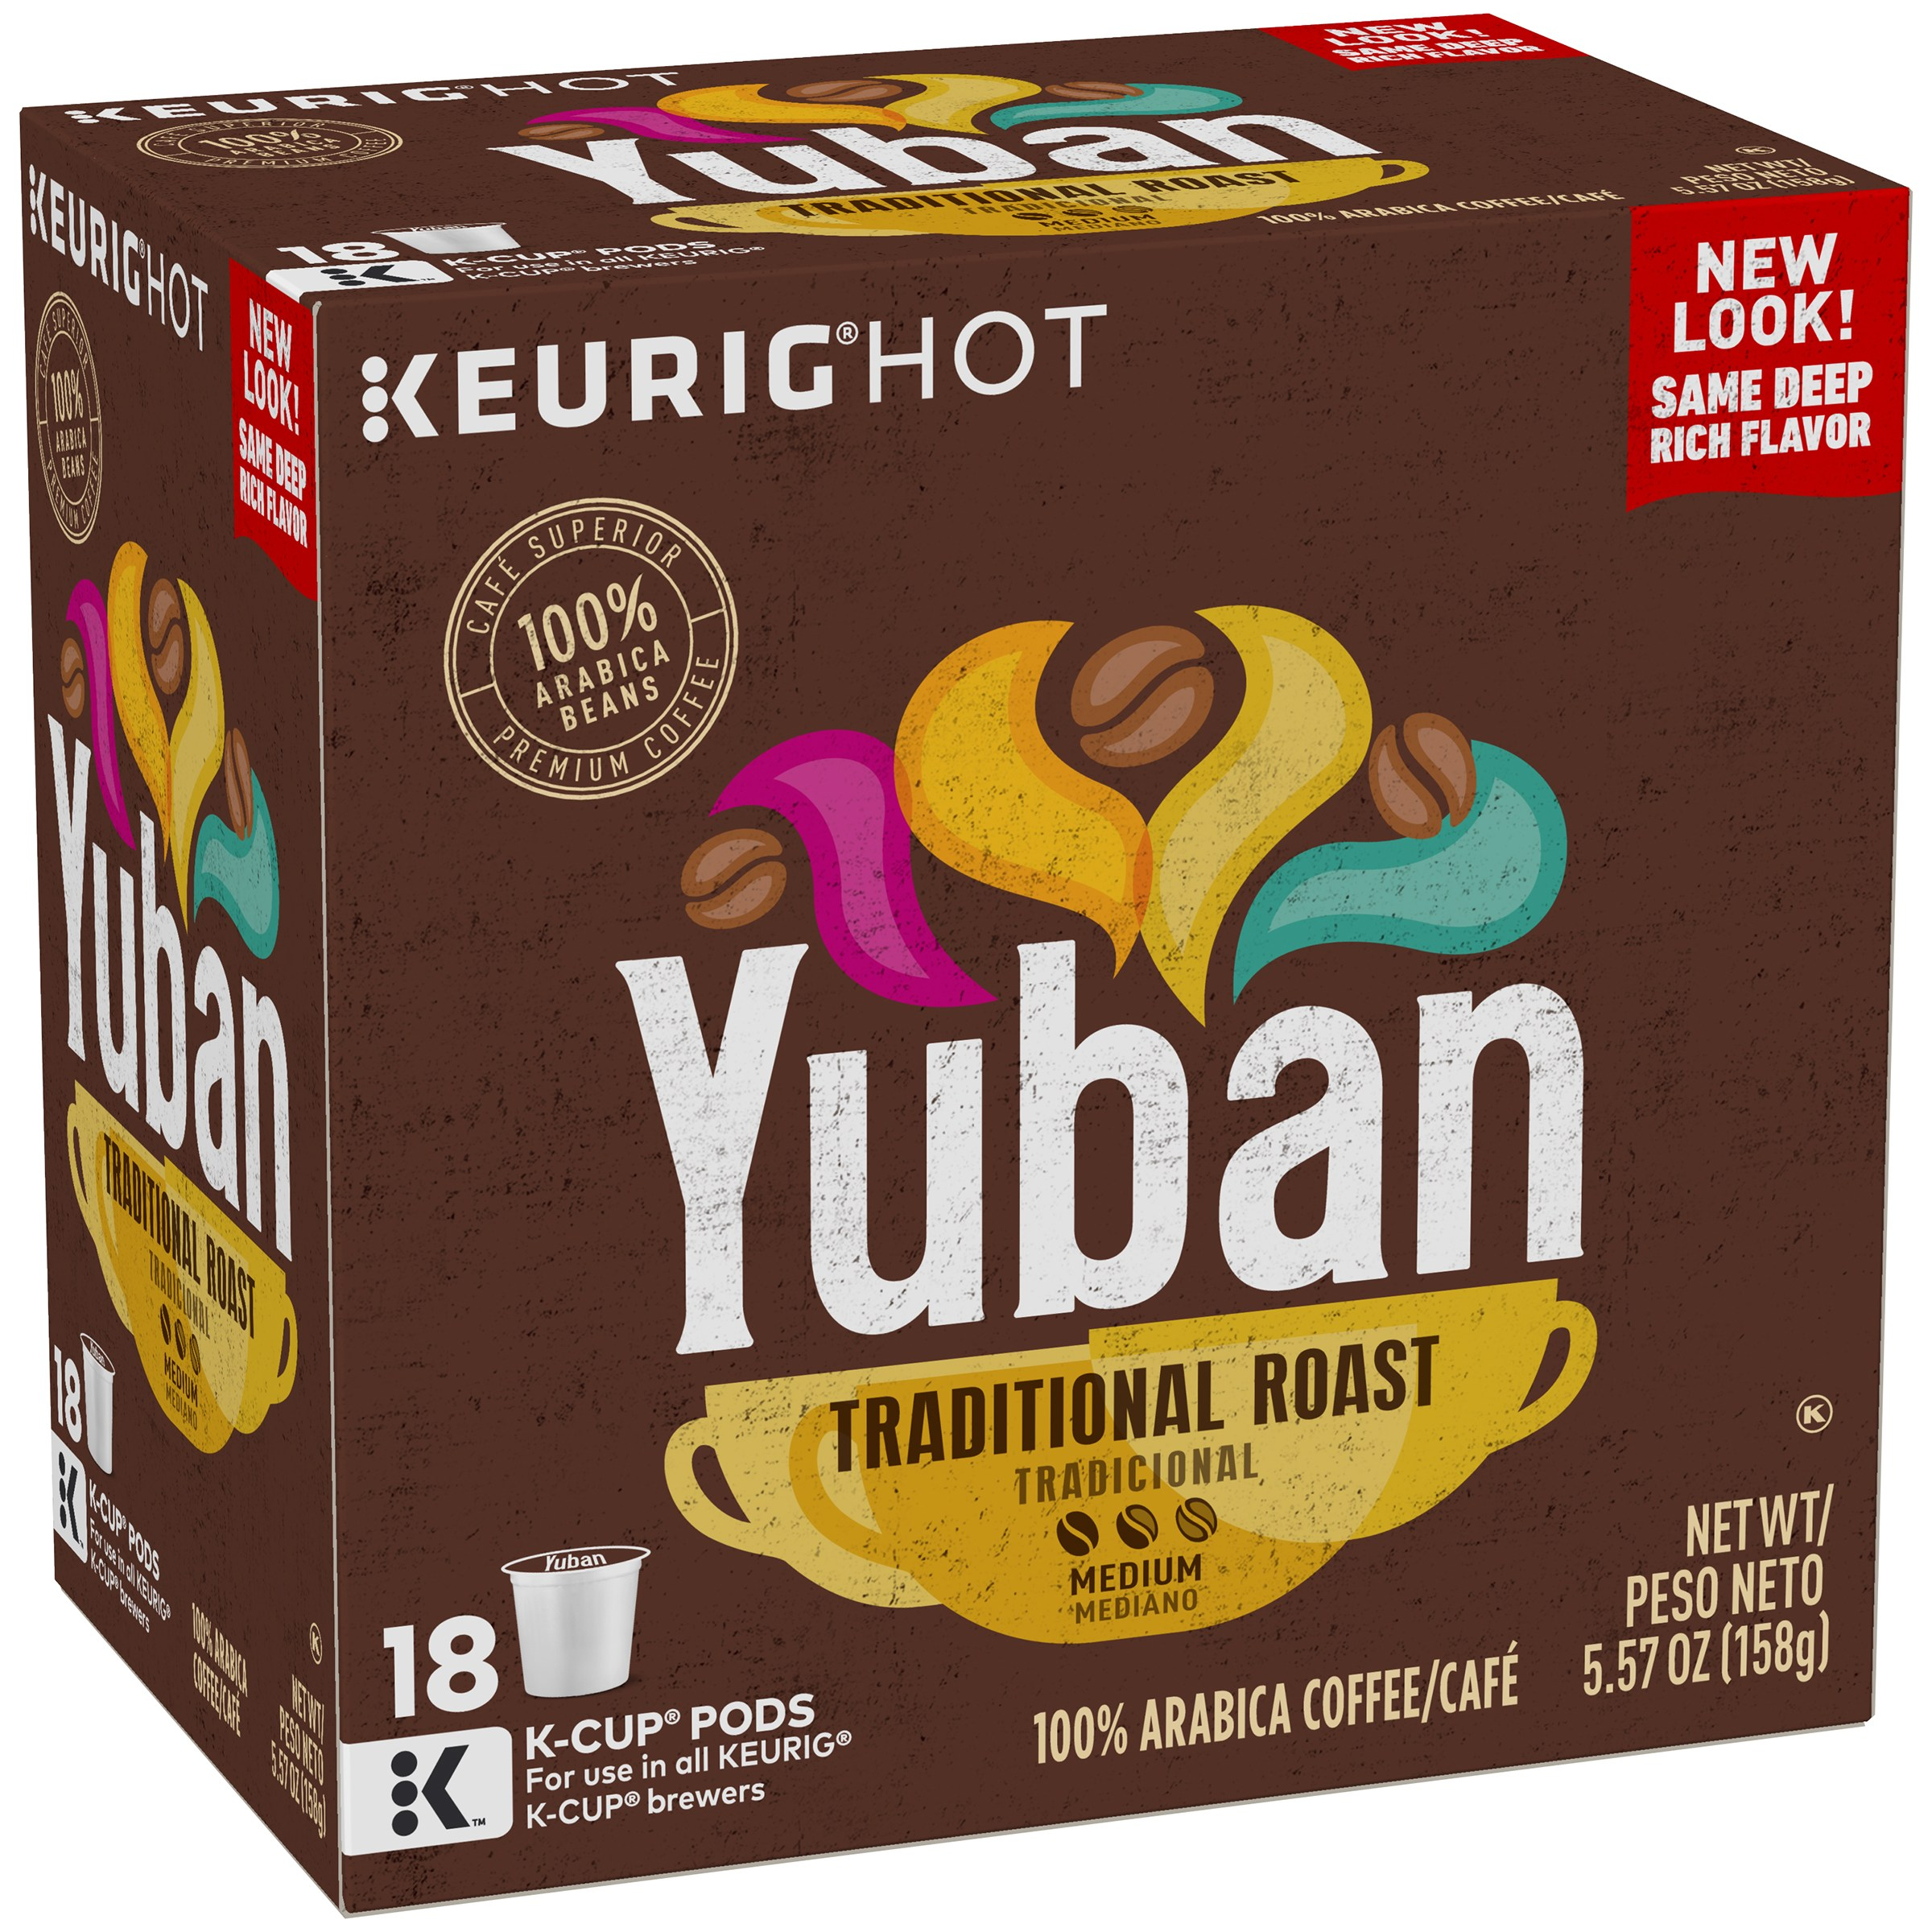 Yuban Gold Medium Original Roast K-Cup Coffee Pods, 18 count, 5.57 oz (158 g)